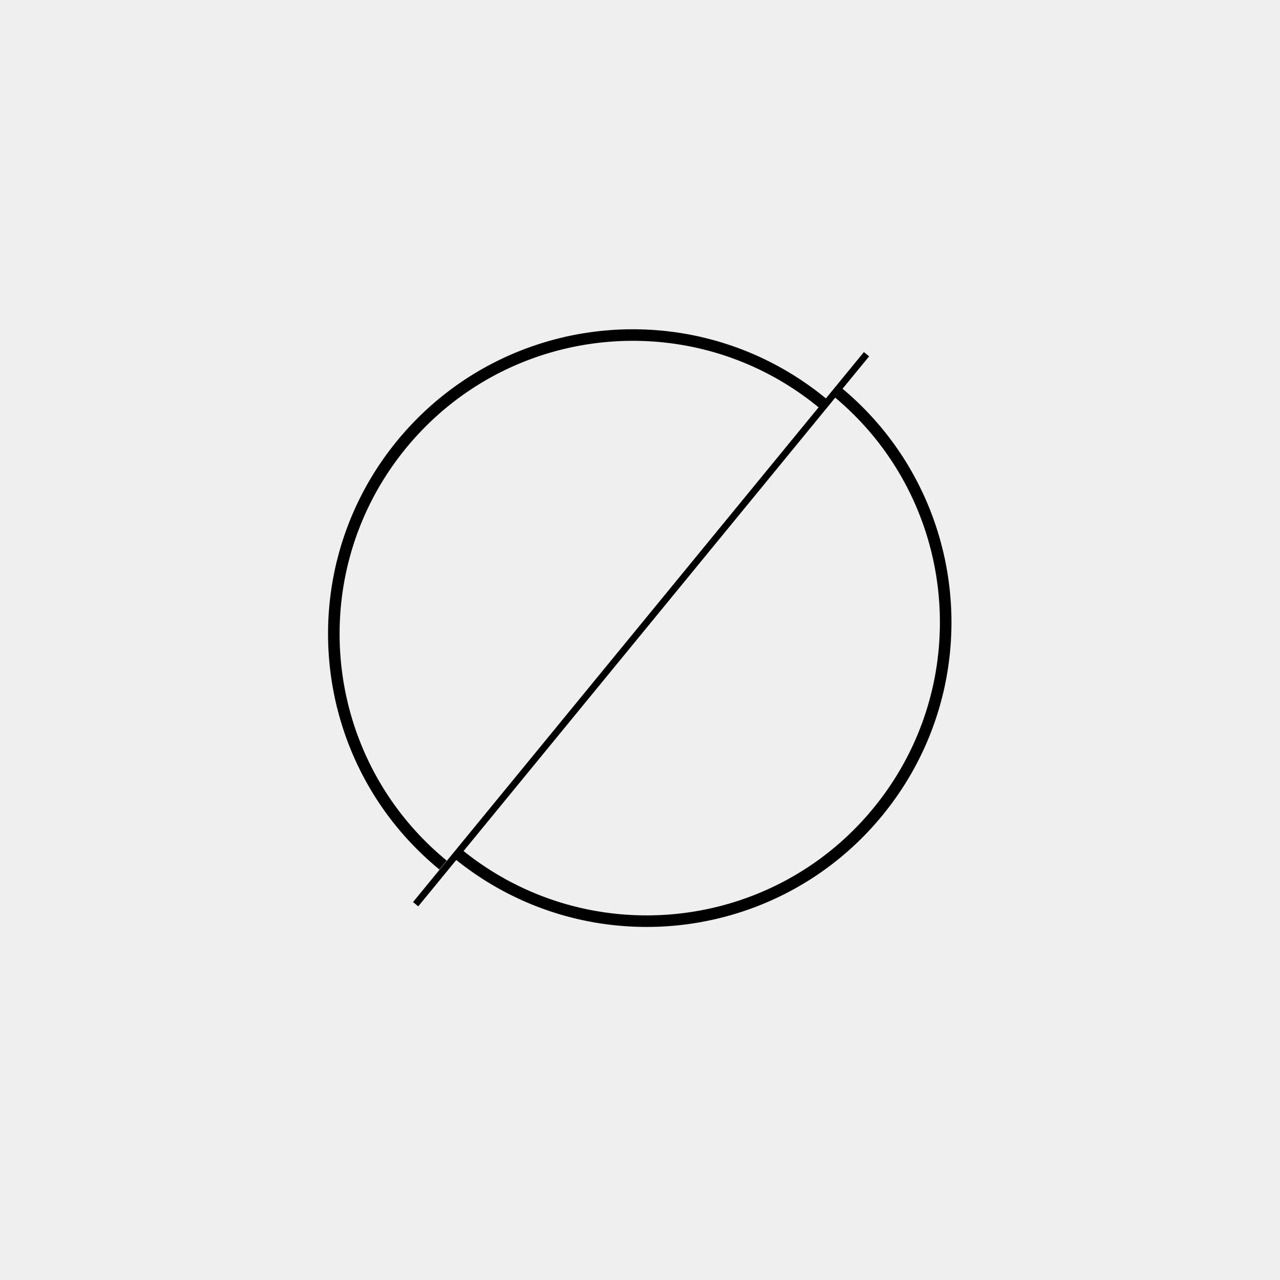 Art Of Geometry Art Abstract Minimalism Shapes Geometric Geometry Aesthetic Tattoo Inspiration Black And White Design Aesthetic Tattoo Graphic Design